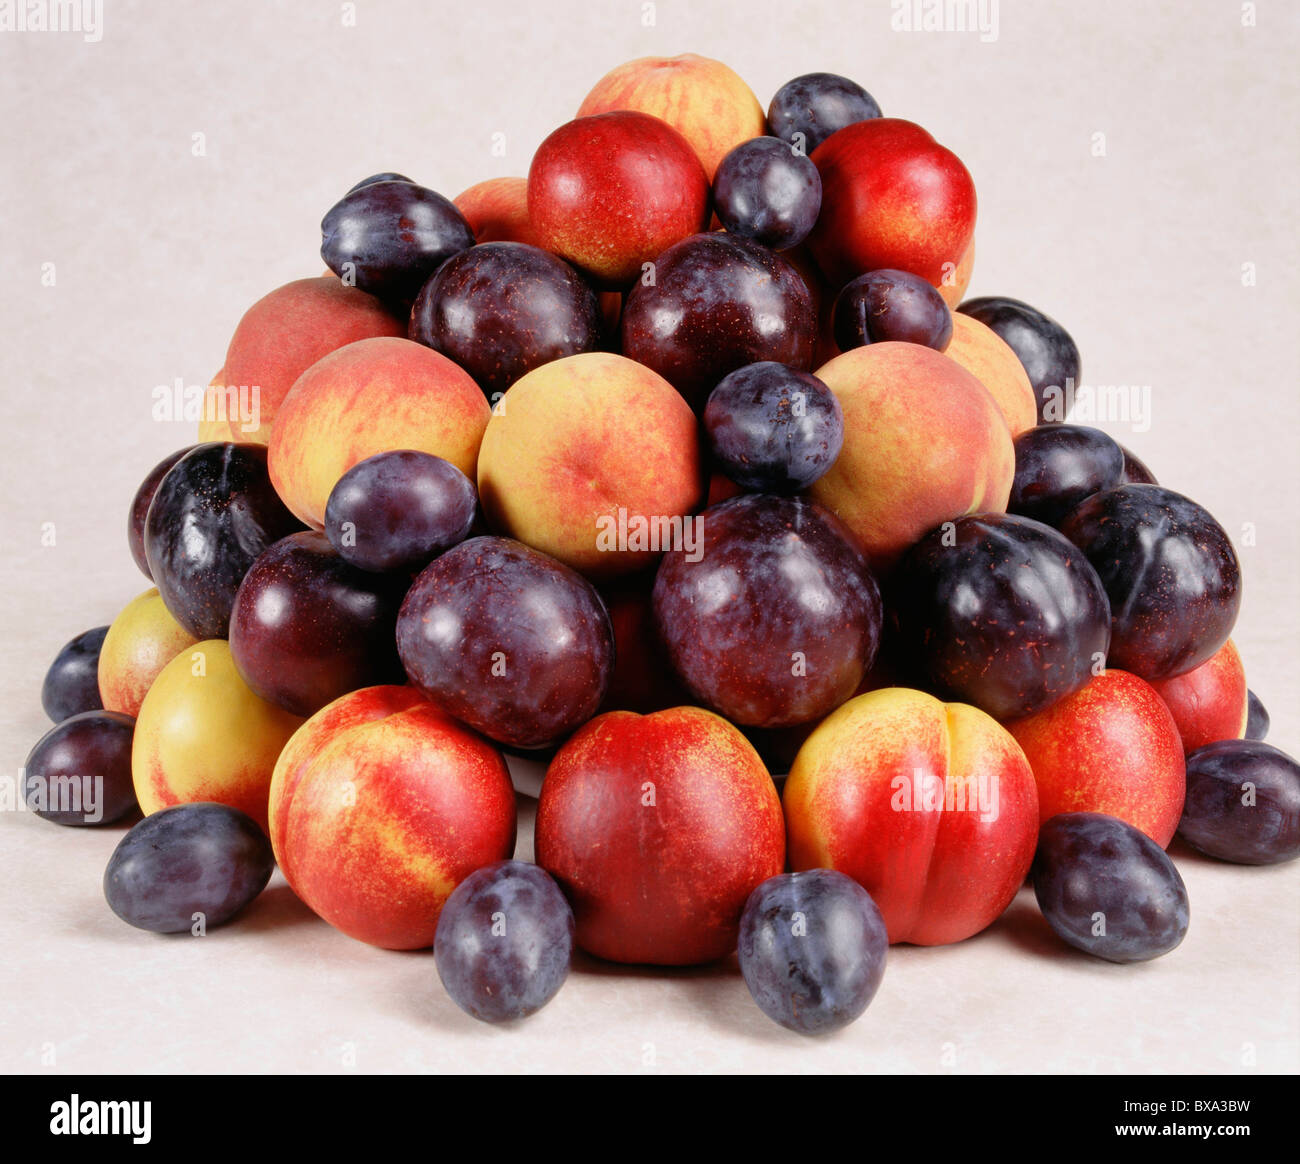 stone fruits peaches plums prunes dried apricots prune plums stock photo 33413629 alamy. Black Bedroom Furniture Sets. Home Design Ideas